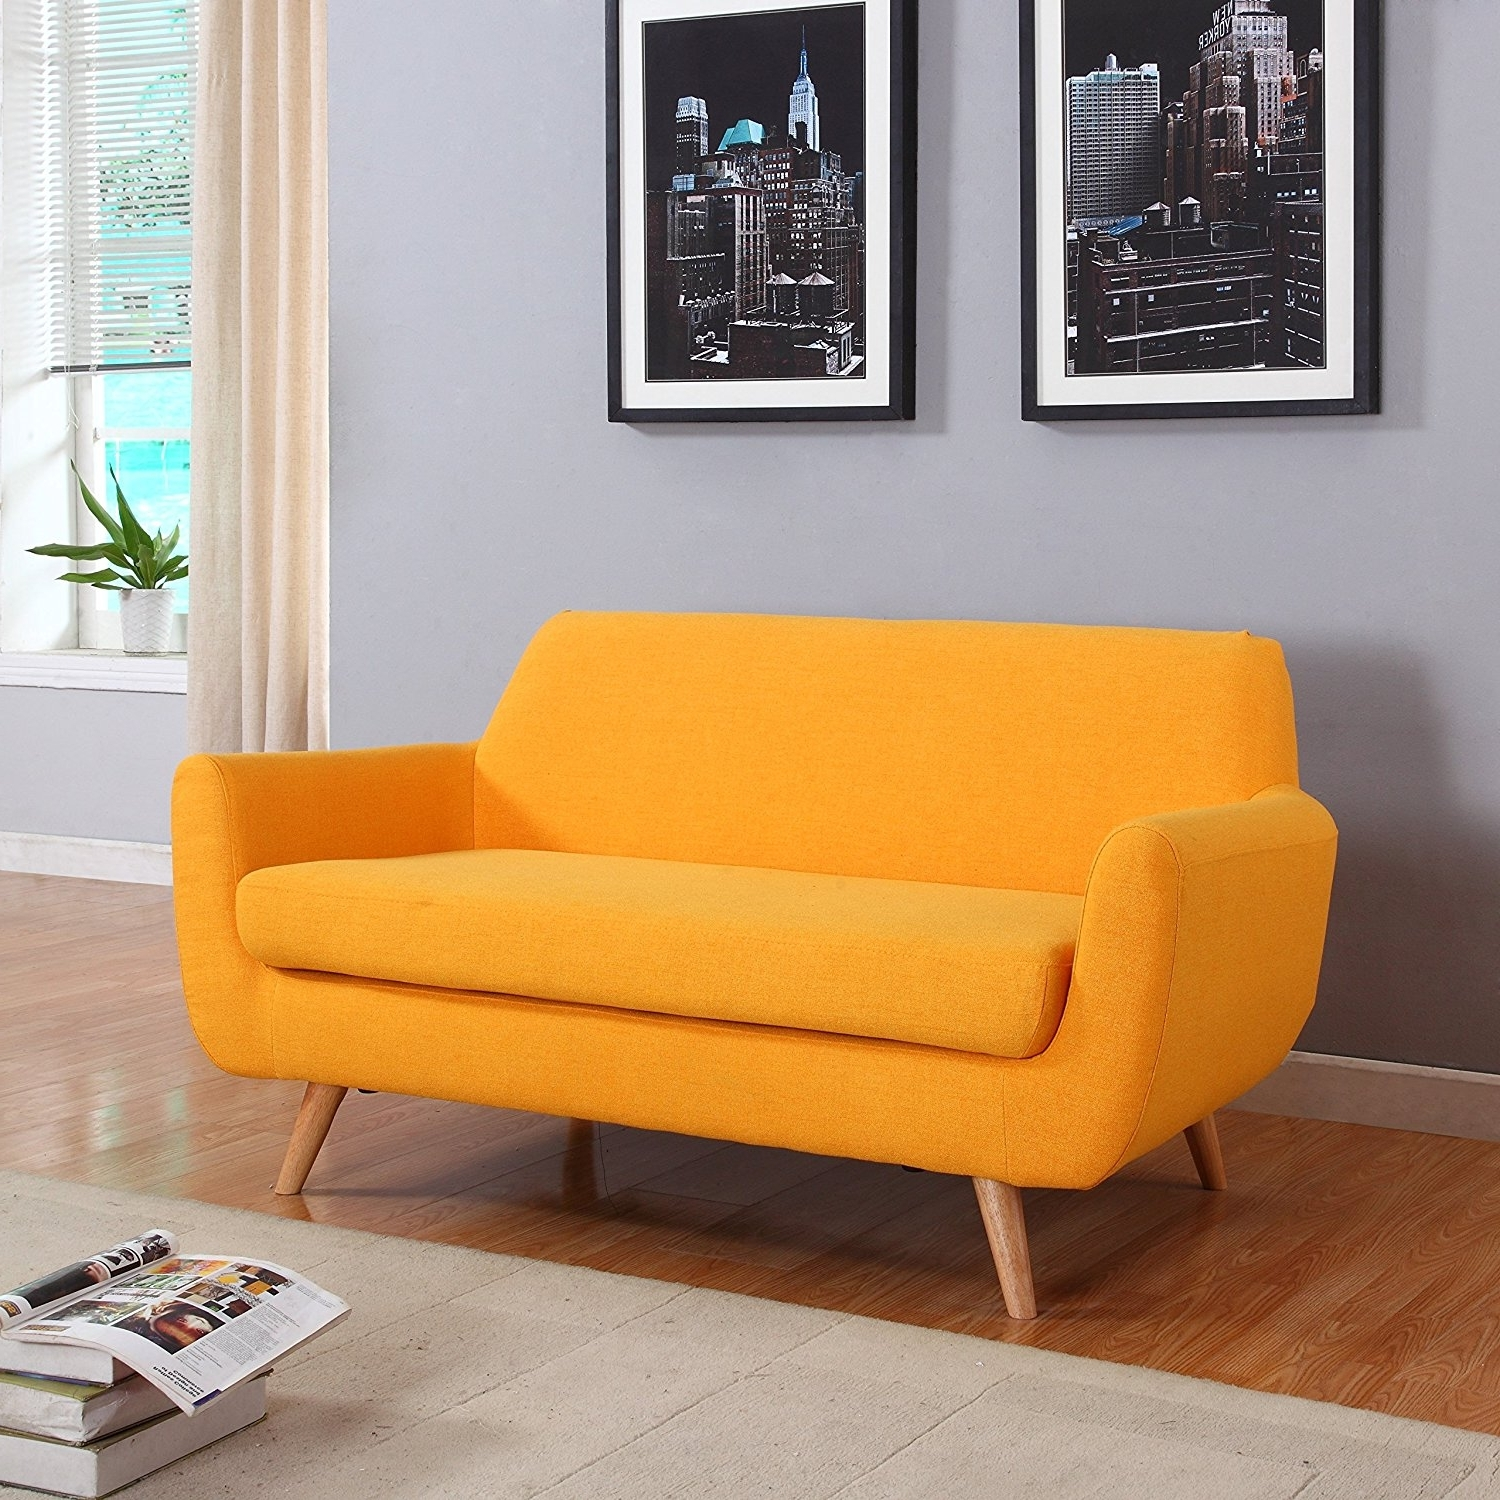 Kingston Ontario Sectional Sofas For 2018 Furniture : Klaussner Hybrid Sofa Sofa Sale January Klaussner (View 16 of 20)